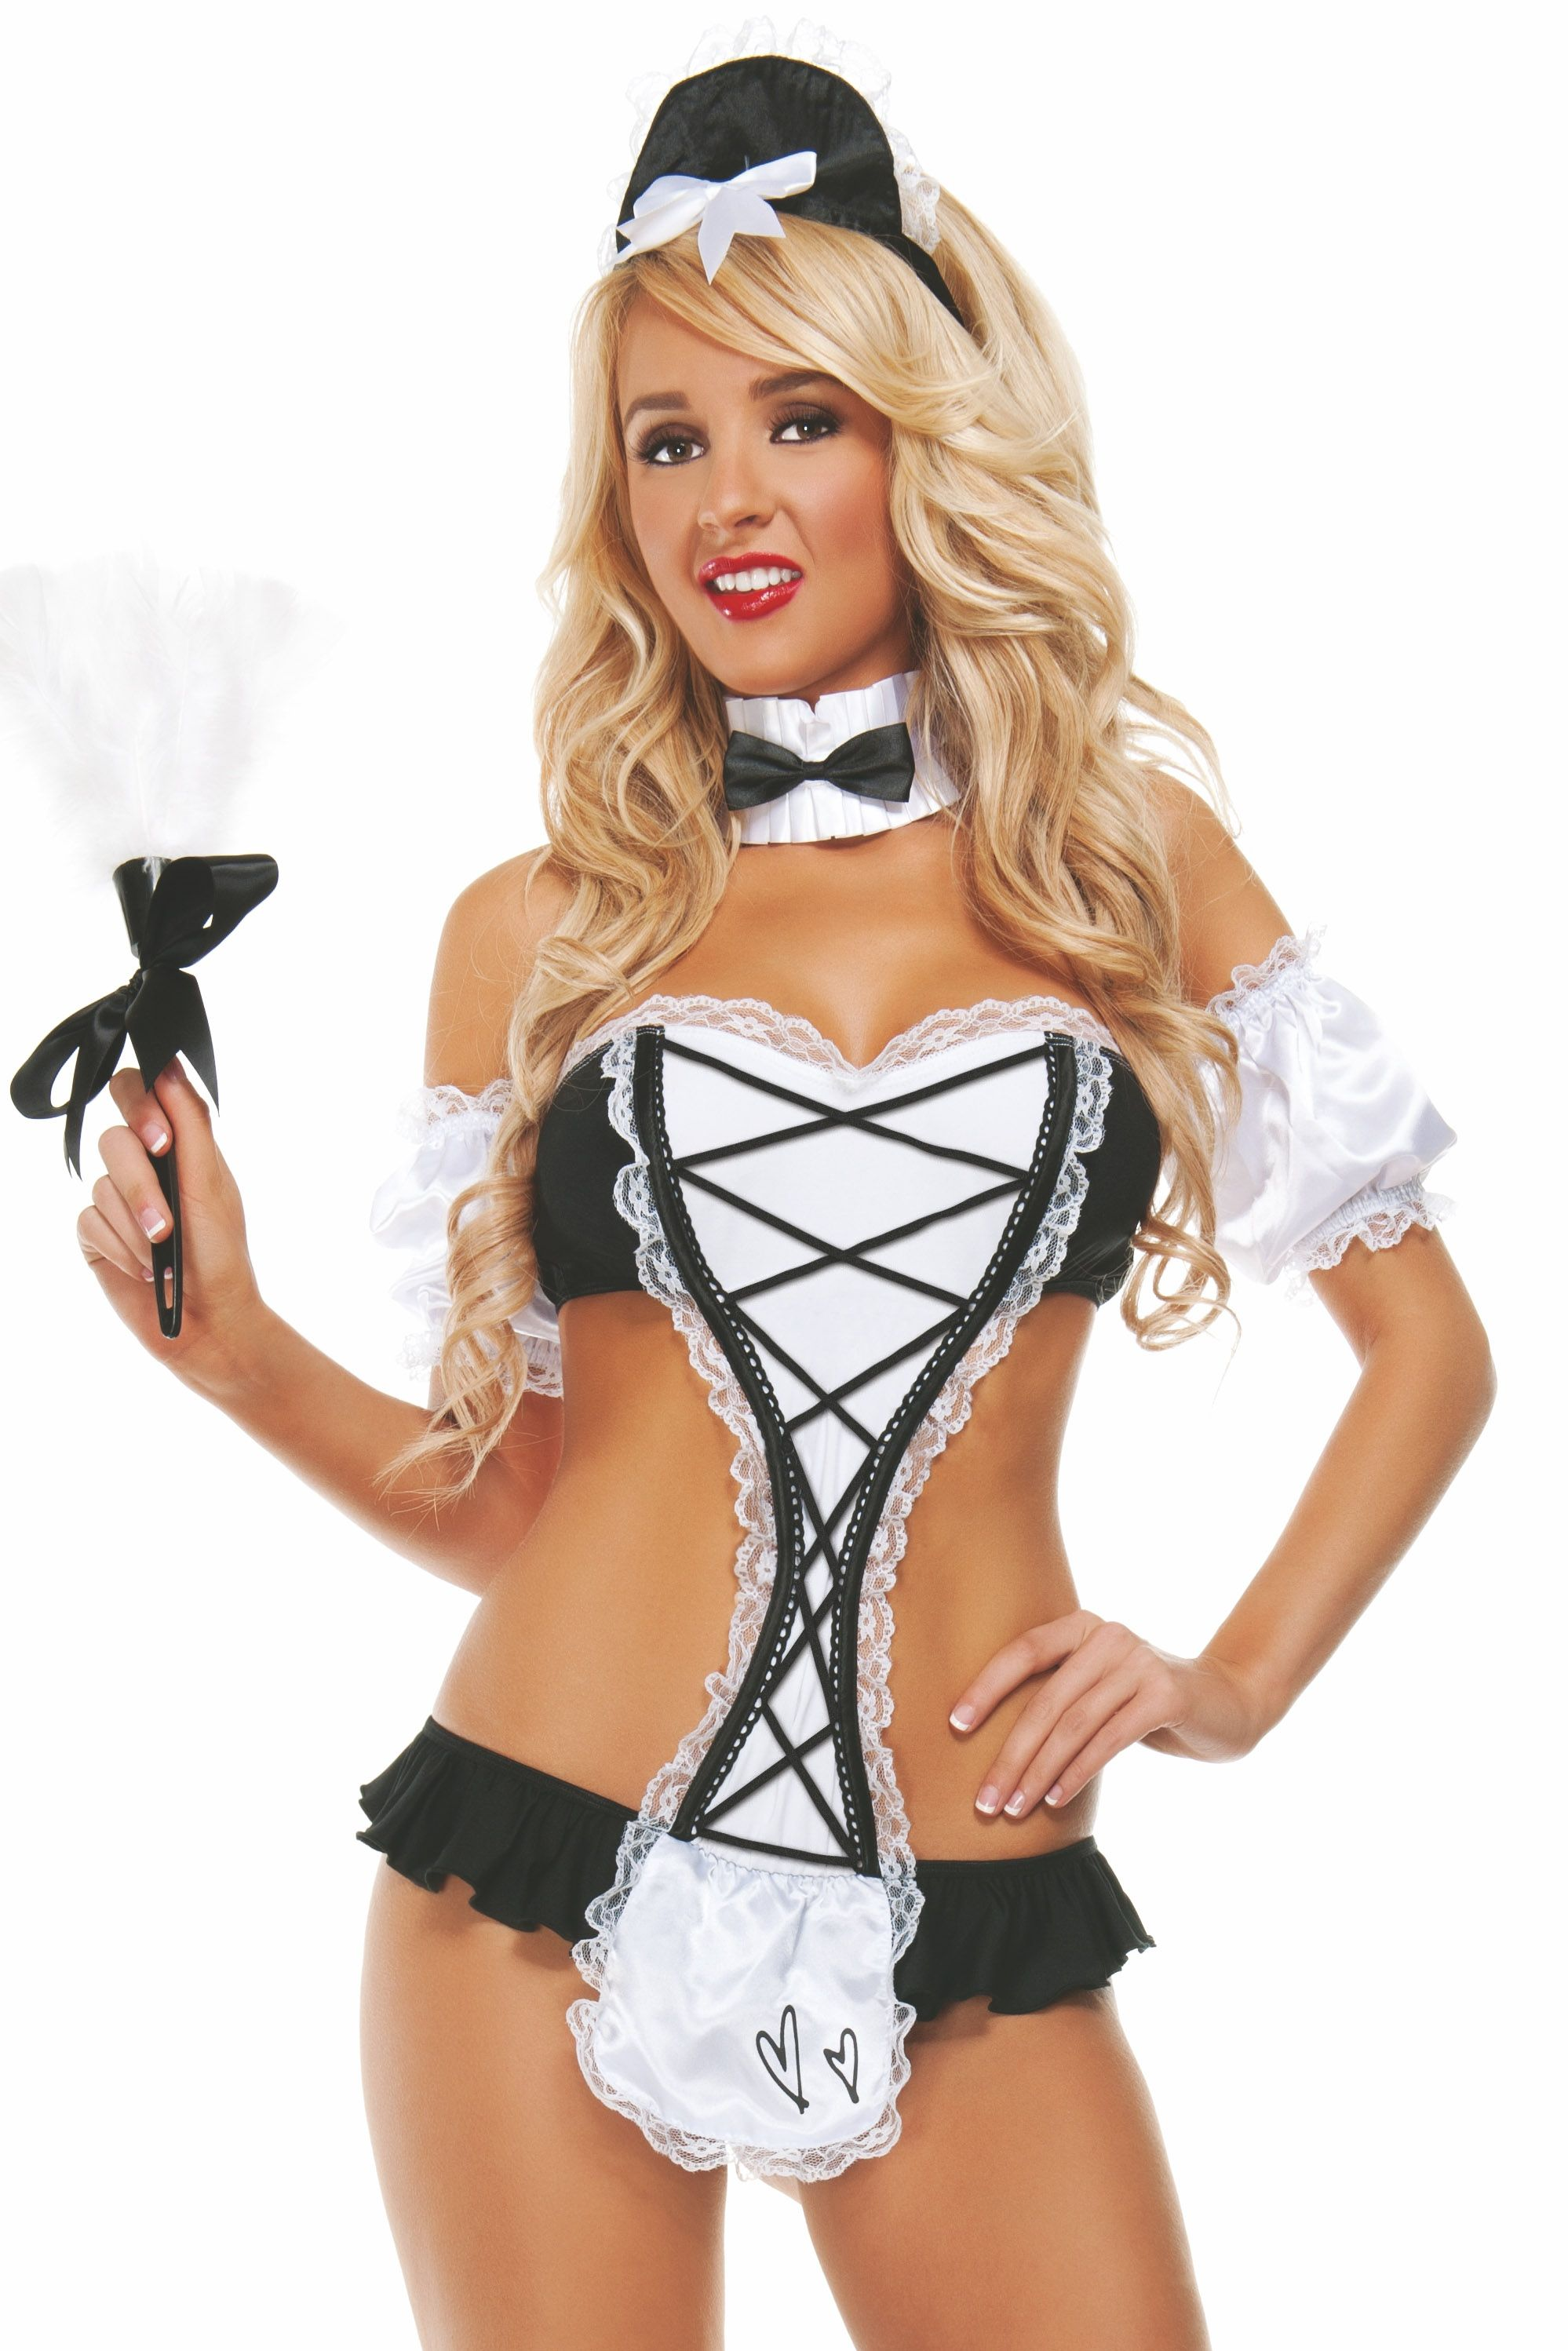 Role Play Ideas For The Bedroom Mischief Maid Costume Women S Halloween Costumes At Ld